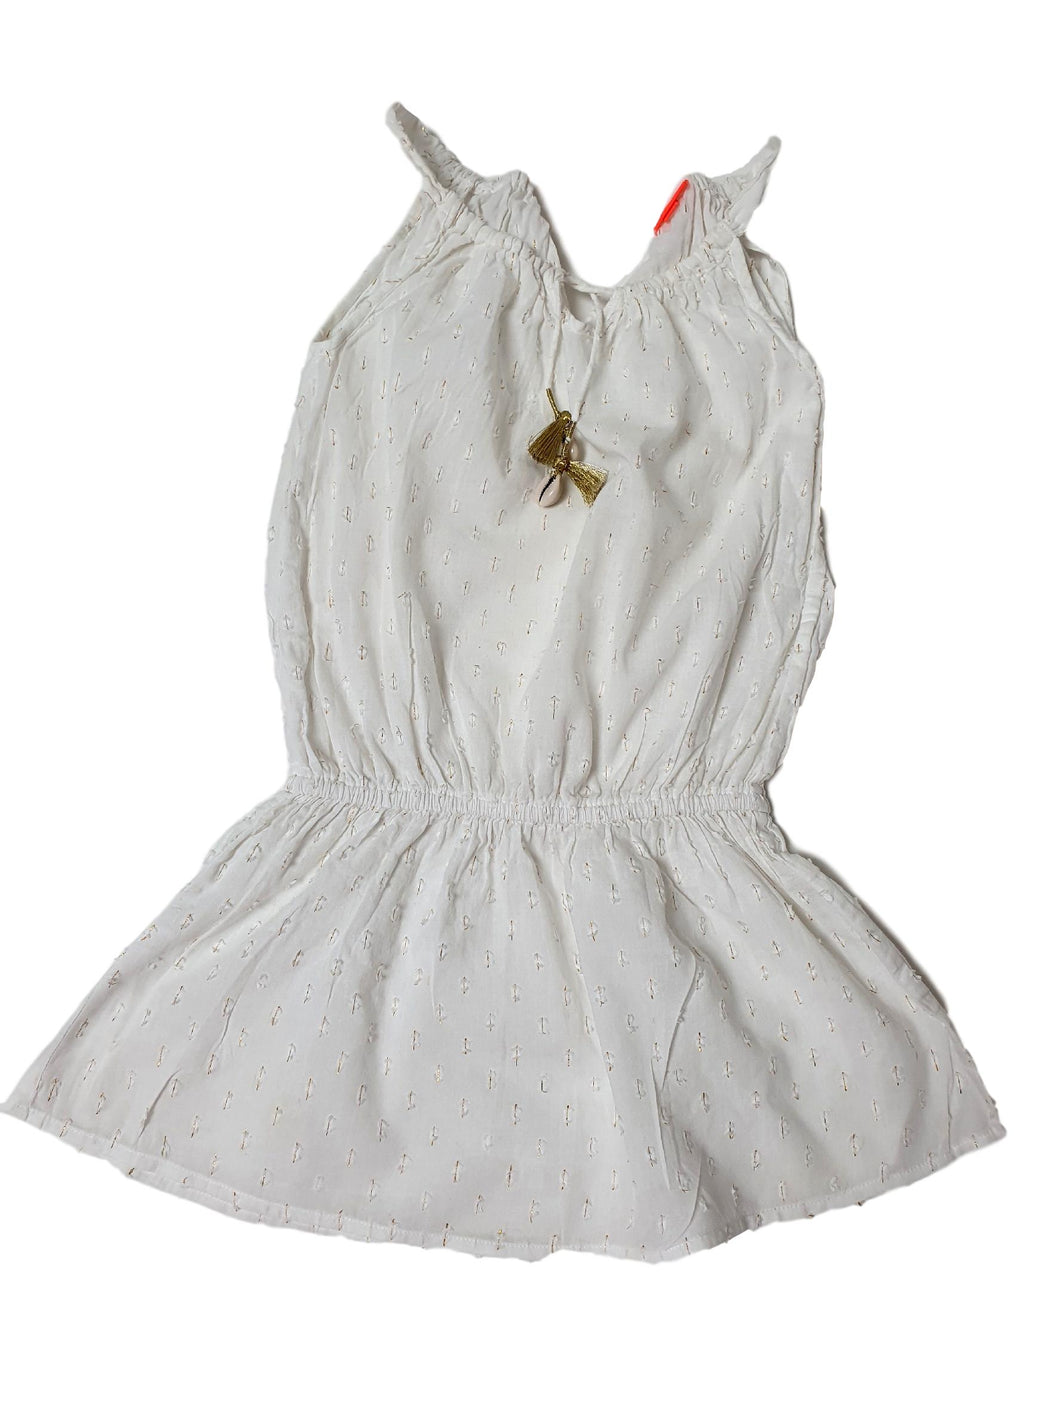 SUNUVA girl dress 5-6 yo defect